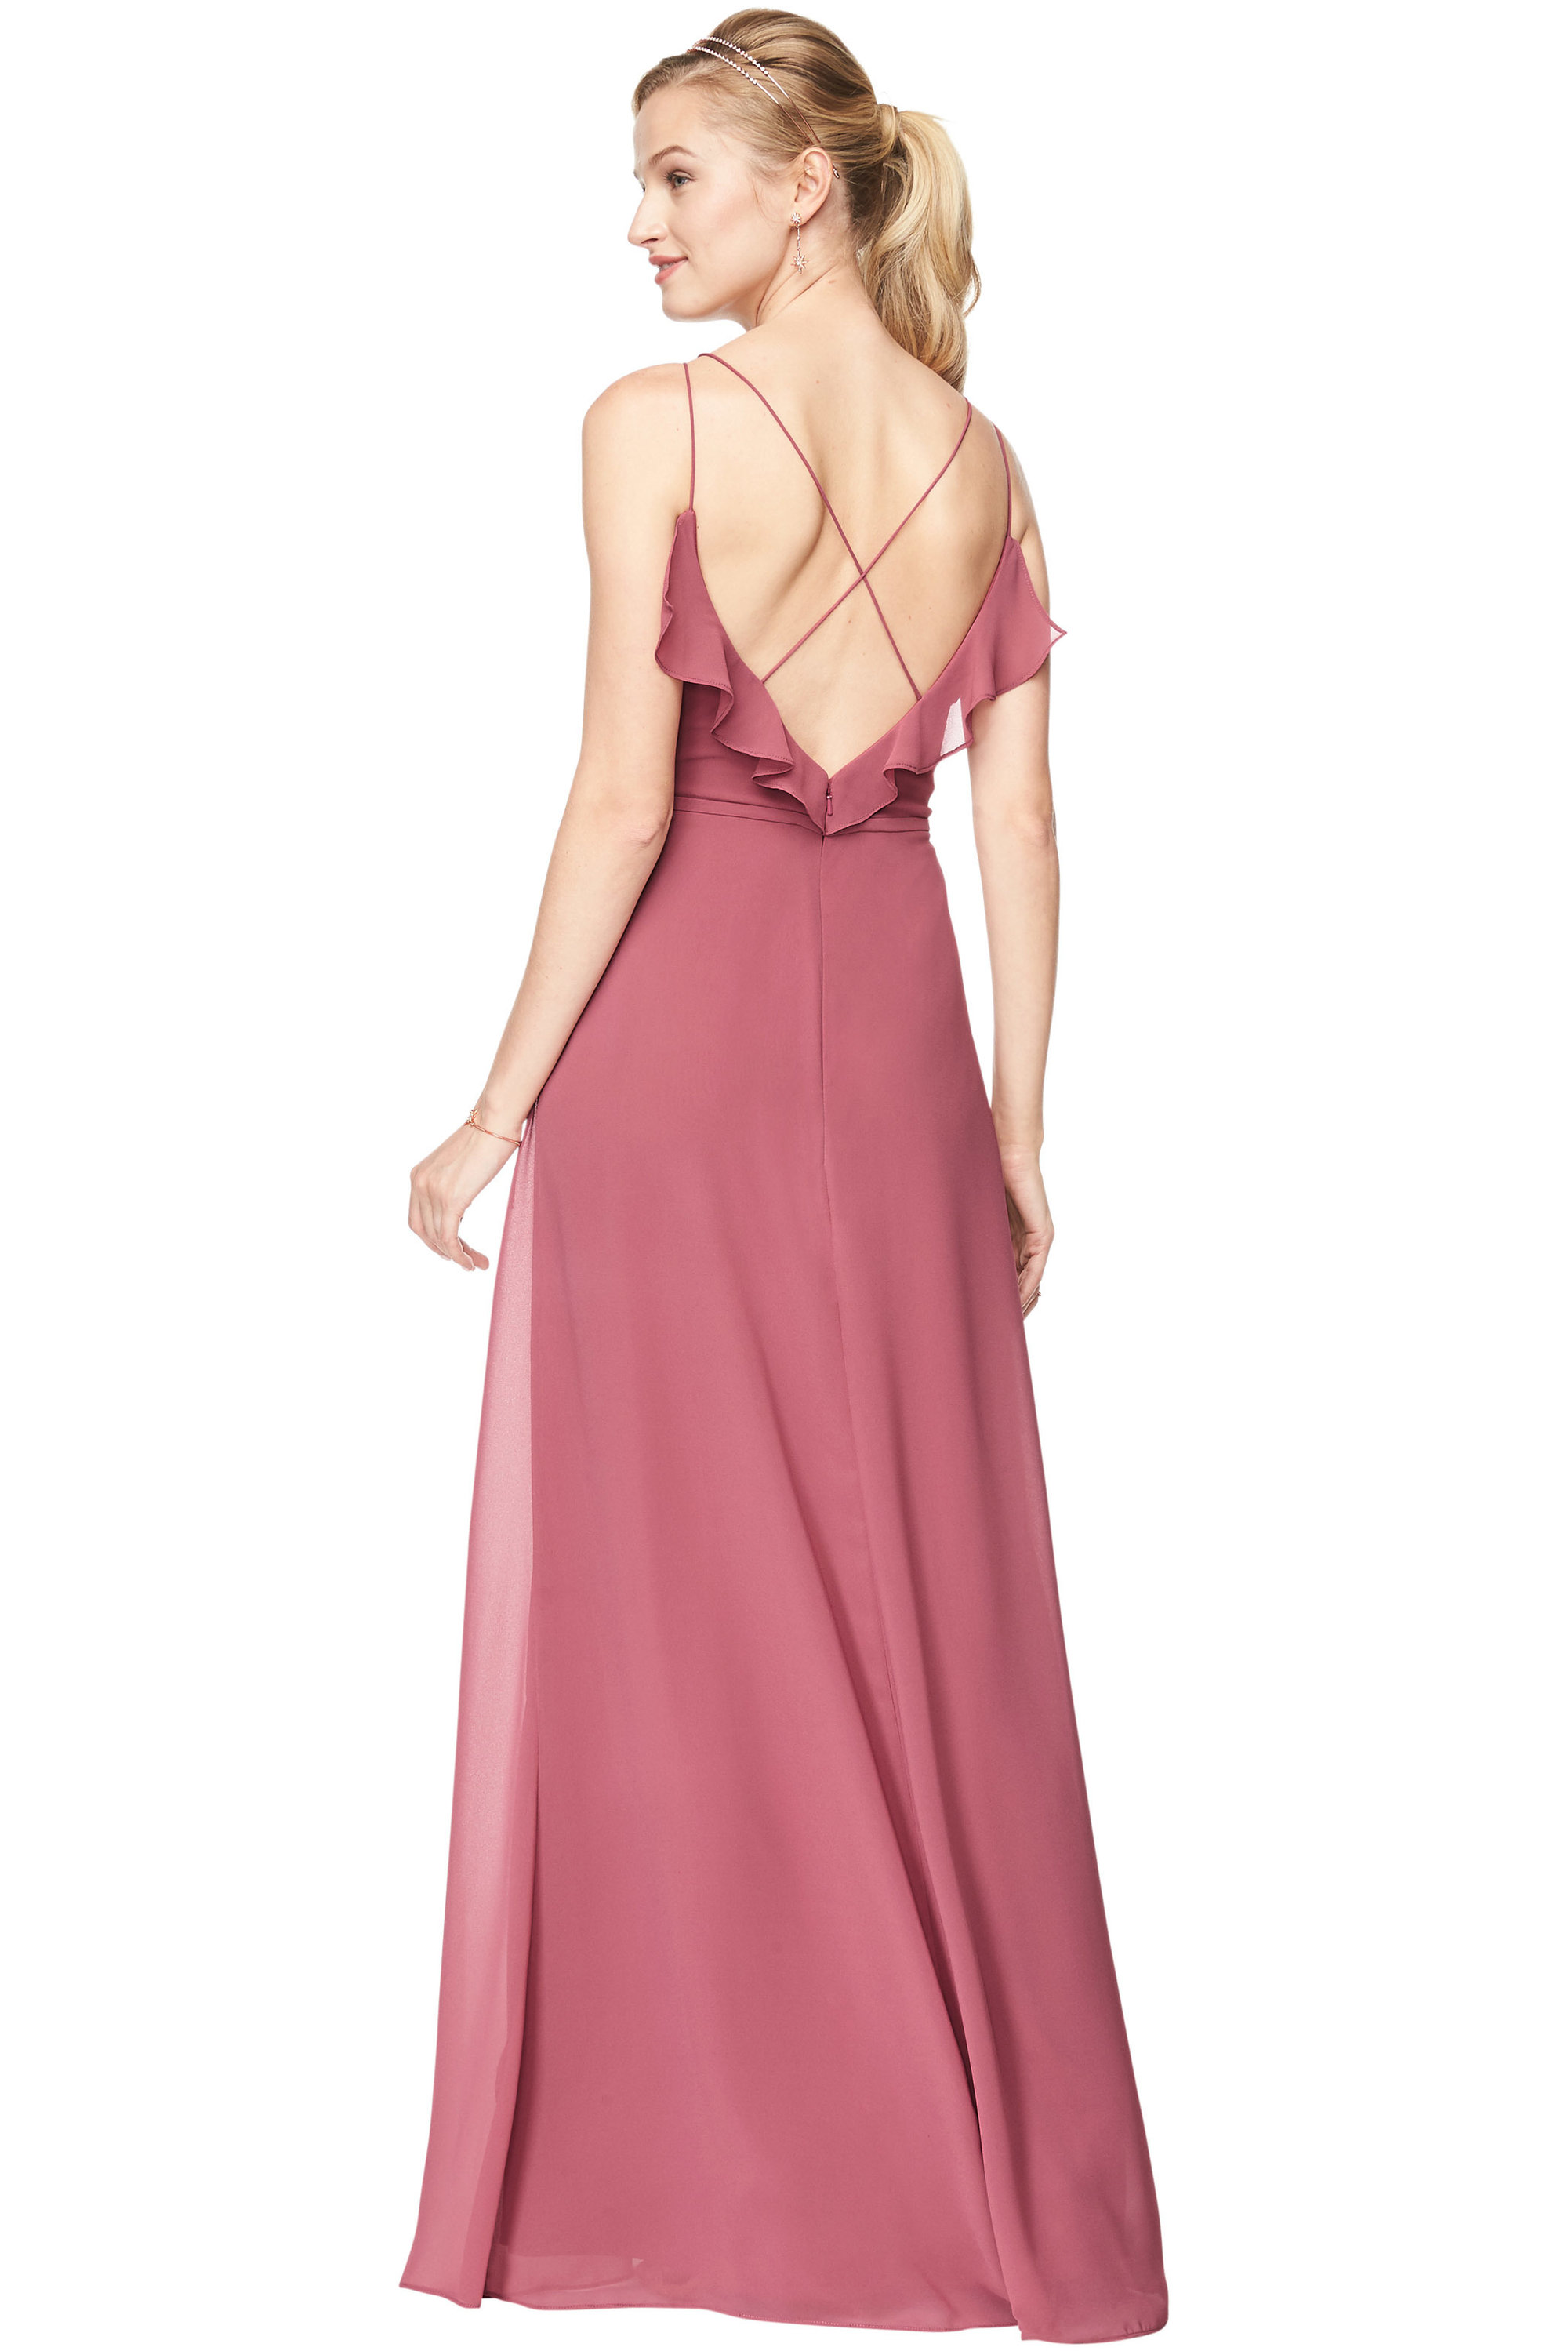 Bill Levkoff ROSEWOOD Chiffon V-Neck A-line gown, $198.00 Back